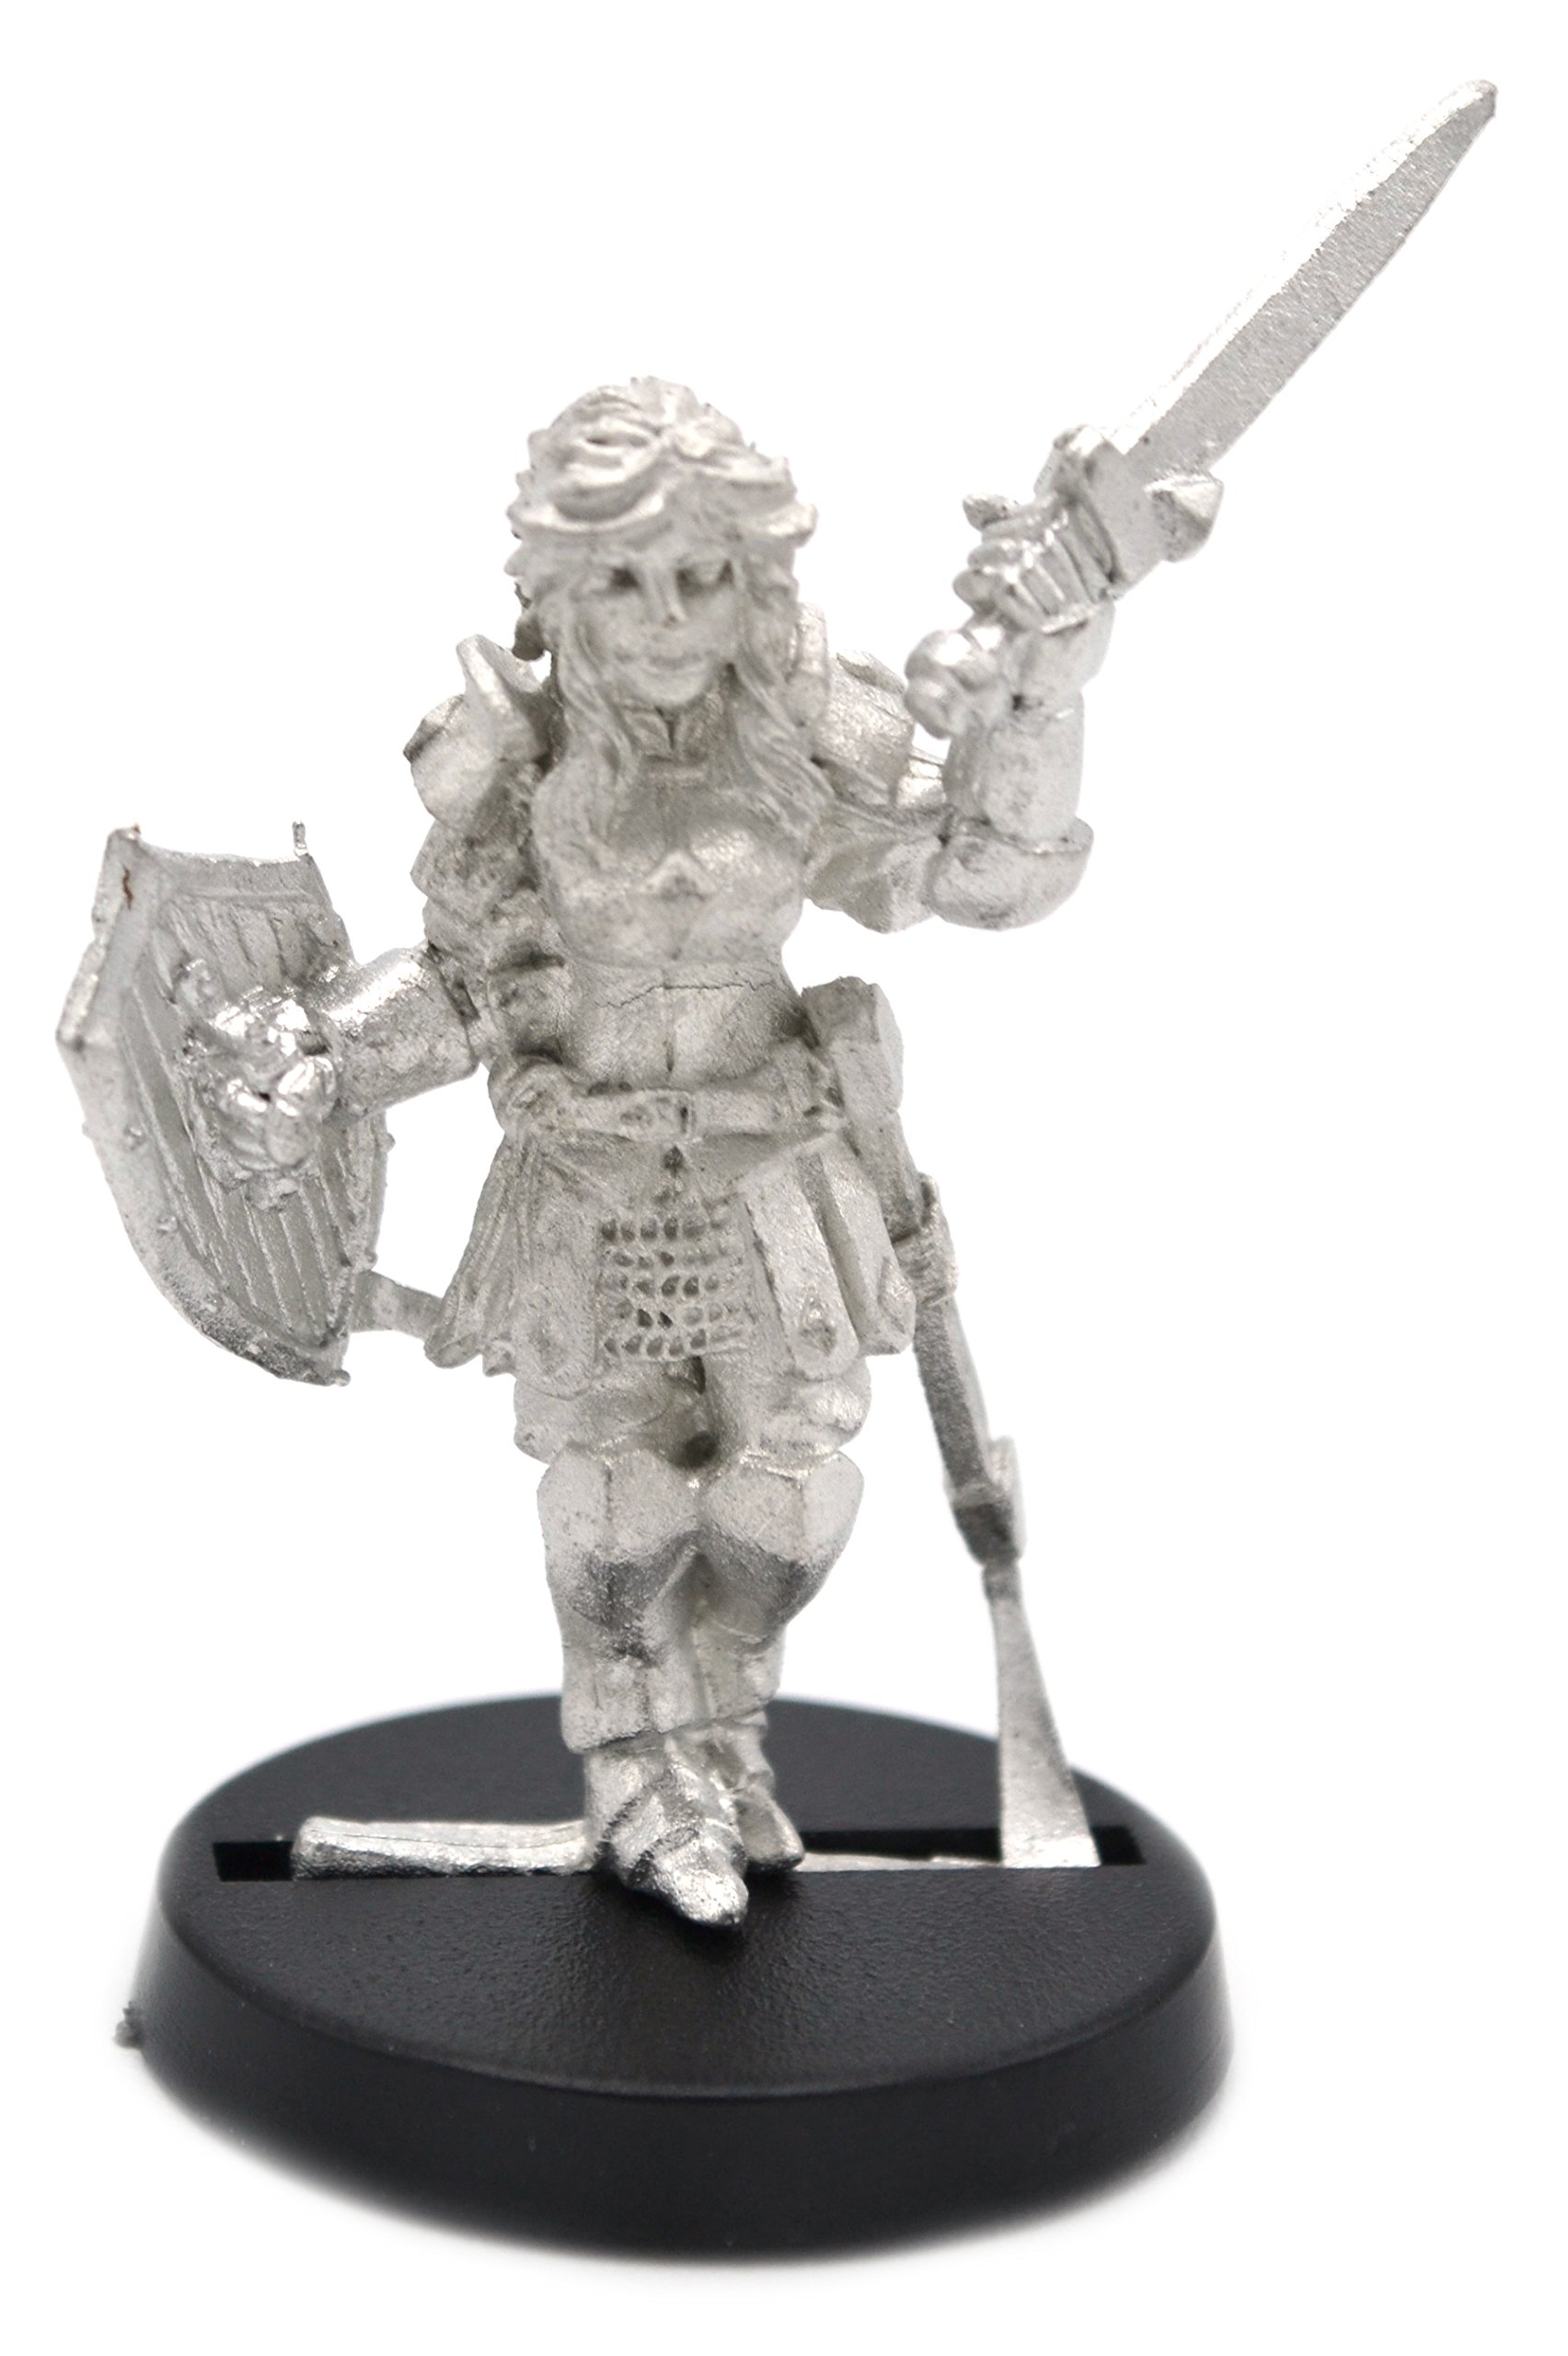 Stonehaven Human Knight Female Miniature Figure (for 28mm Scale Table Top War Games) - Made in US